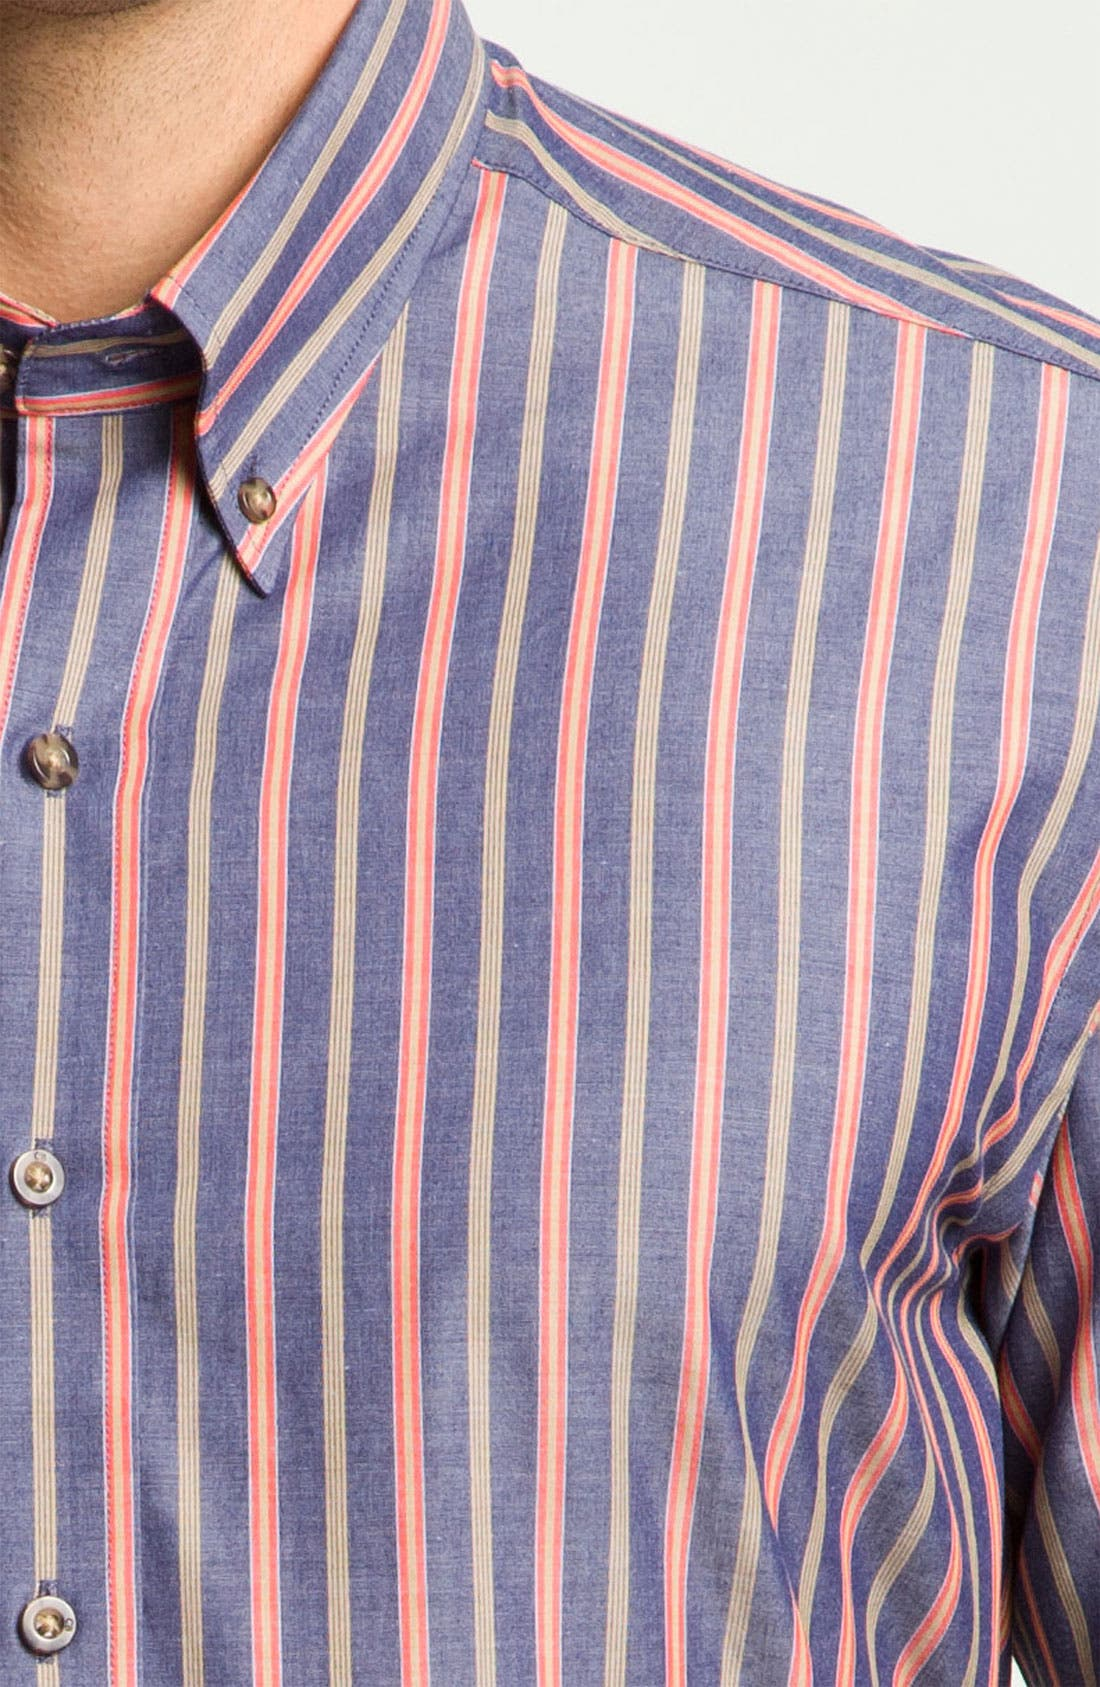 Alternate Image 3  - Cutter & Buck 'Harvest' Stripe Sport Shirt (Big & Tall) (Online Only)